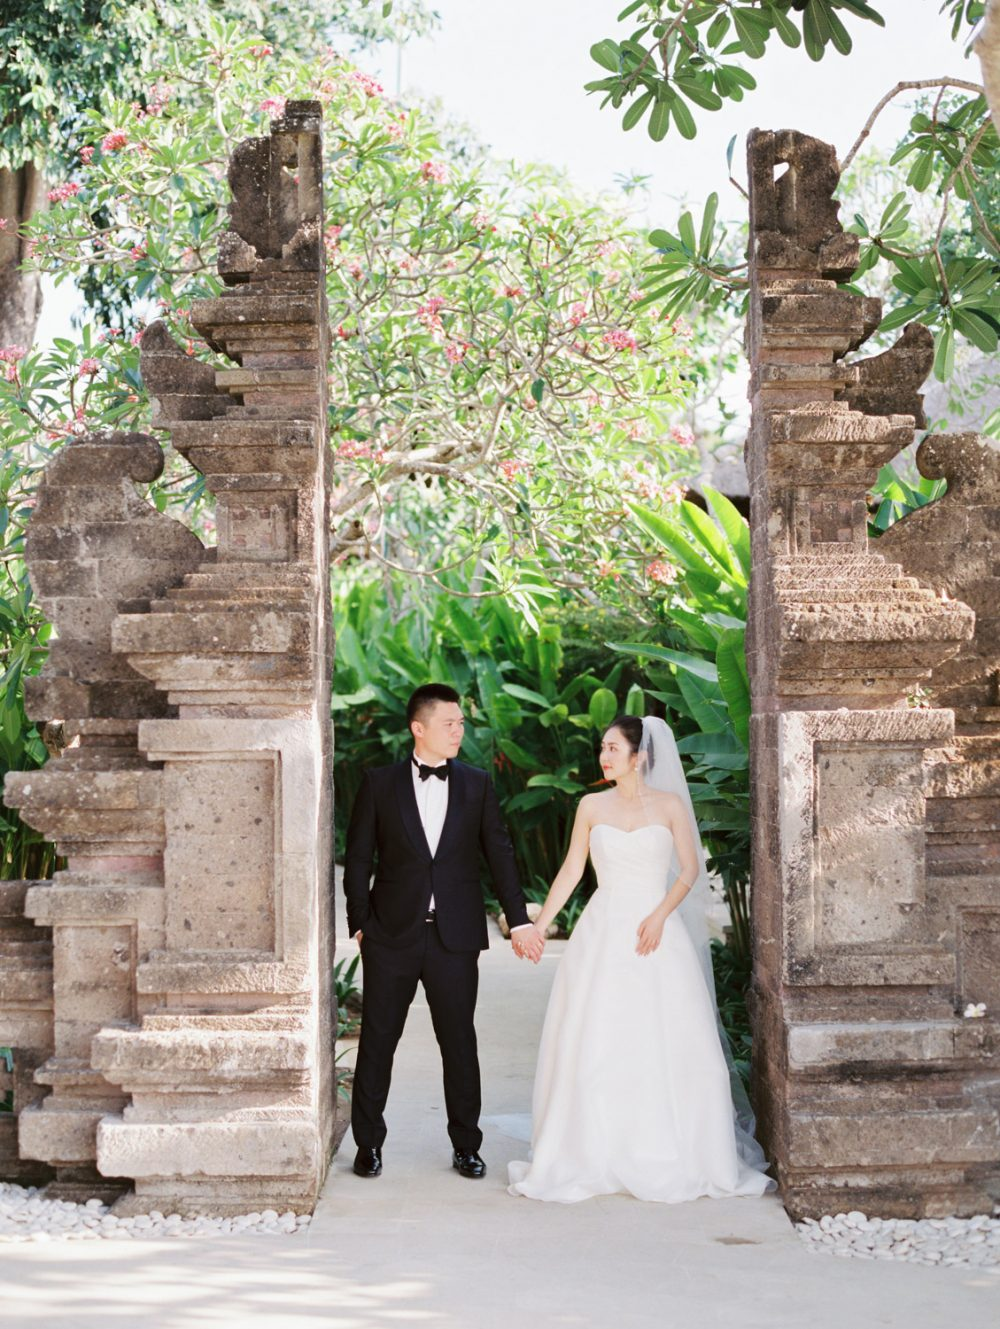 Bali wedding, bali wedding photography, bali wedding photographer, ayana resort and spa, Sydney wedding photography, sydney wedding photographer, wedding photogragher, sydney, Sydney wedding, Australian wedding, sydney fine art wedding photography, sydney fine art wedding photographer, fine art wedding, fine art wedding photography, fine art wedding photographer, Australian wedding photographer, Australian wedding photography, sydney fine art wedding photographer, sydney fine art wedding photography, themood lab, the mood lab photographyBali wedding, bali wedding photography, bali wedding photographer, ayana resort and spa, Sydney wedding photography, sydney wedding photographer, wedding photogragher, sydney, Sydney wedding, Australian wedding, sydney fine art wedding photography, sydney fine art wedding photographer, fine art wedding, fine art wedding photography, fine art wedding photographer, Australian wedding photographer, Australian wedding photography, sydney fine art wedding photographer, sydney fine art wedding photography, themood lab, the mood lab photography